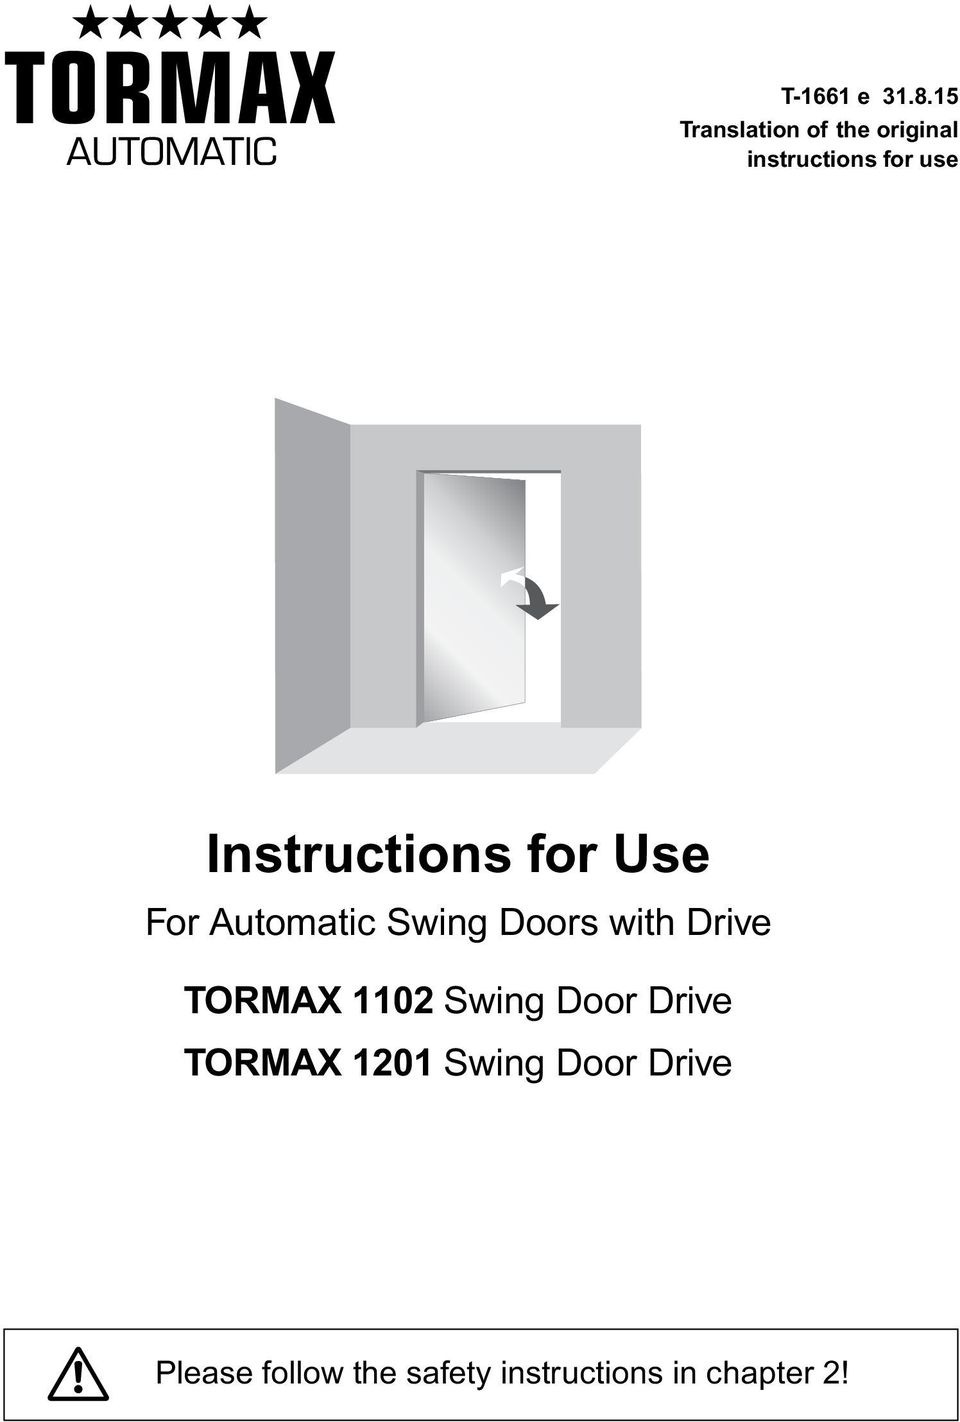 Tormax 1201 Wiring Diagram Trusted Diagrams Instructions For Use Pdf